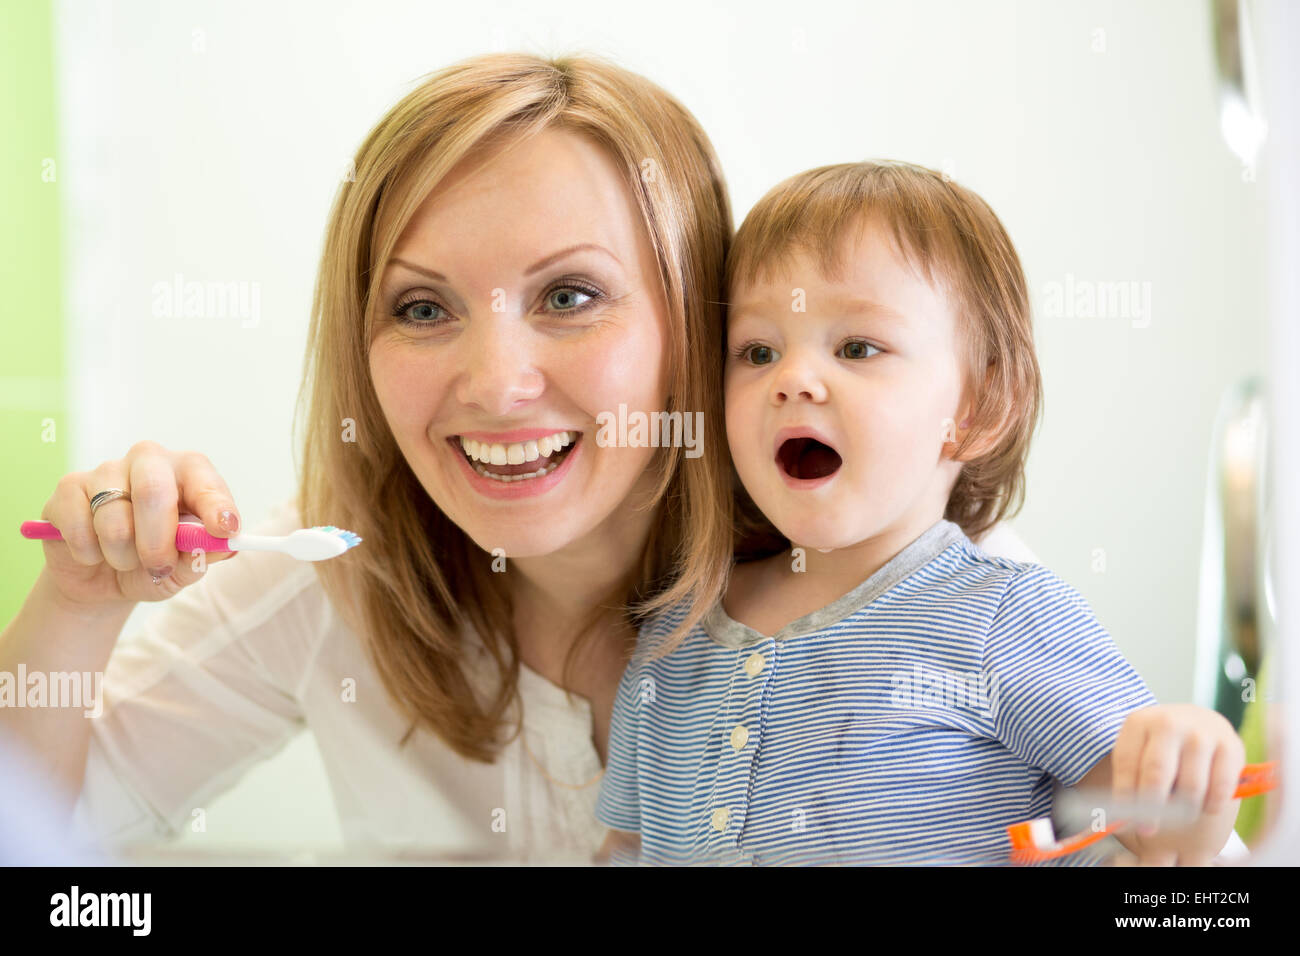 mother teaching child teeth brushing Stock Photo